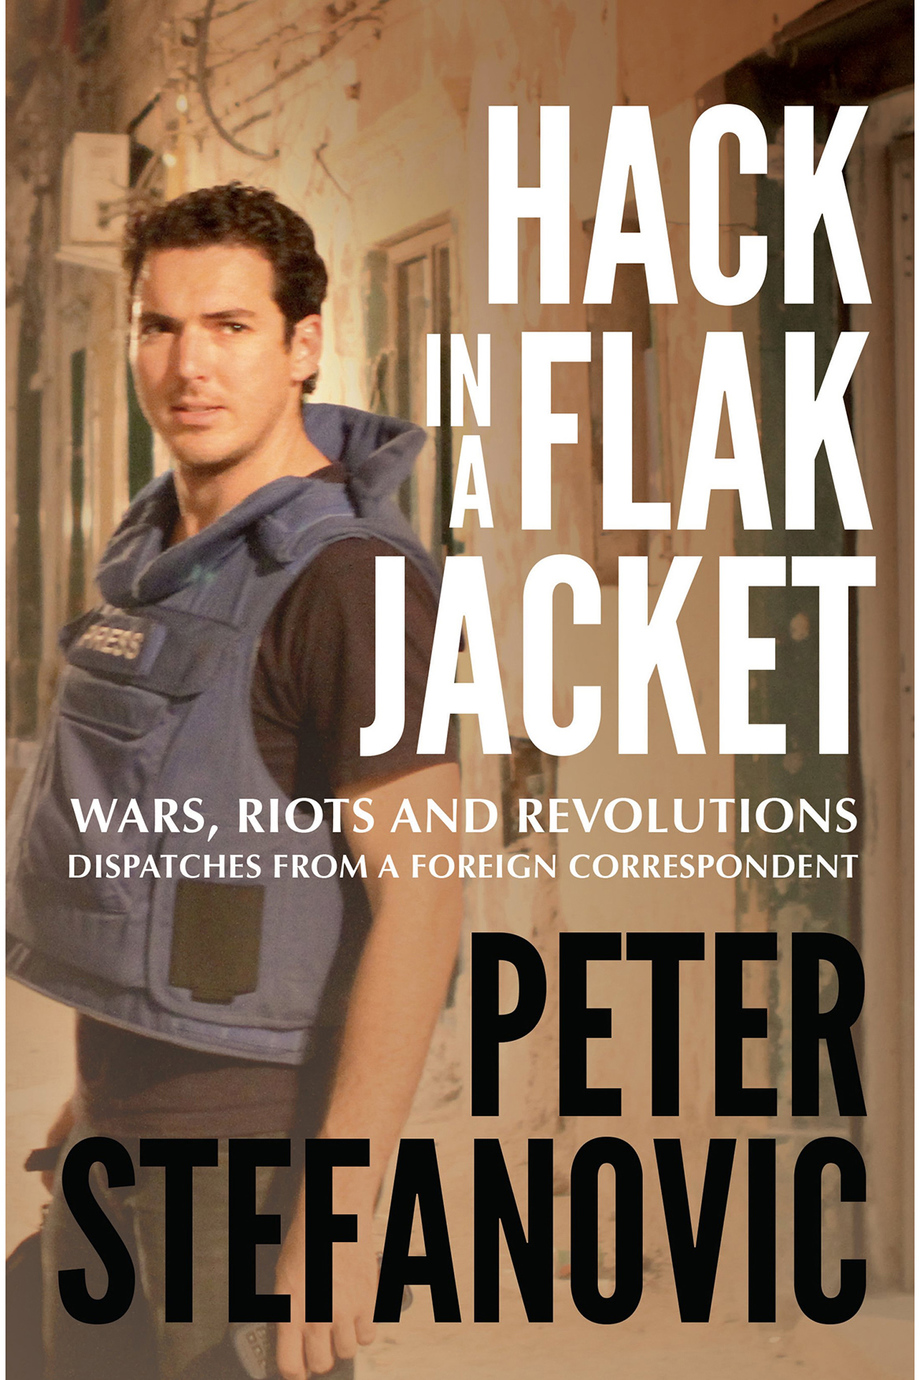 Hack in a Flak Jacket  - Peter StefanovicRating: 4.5 / 5